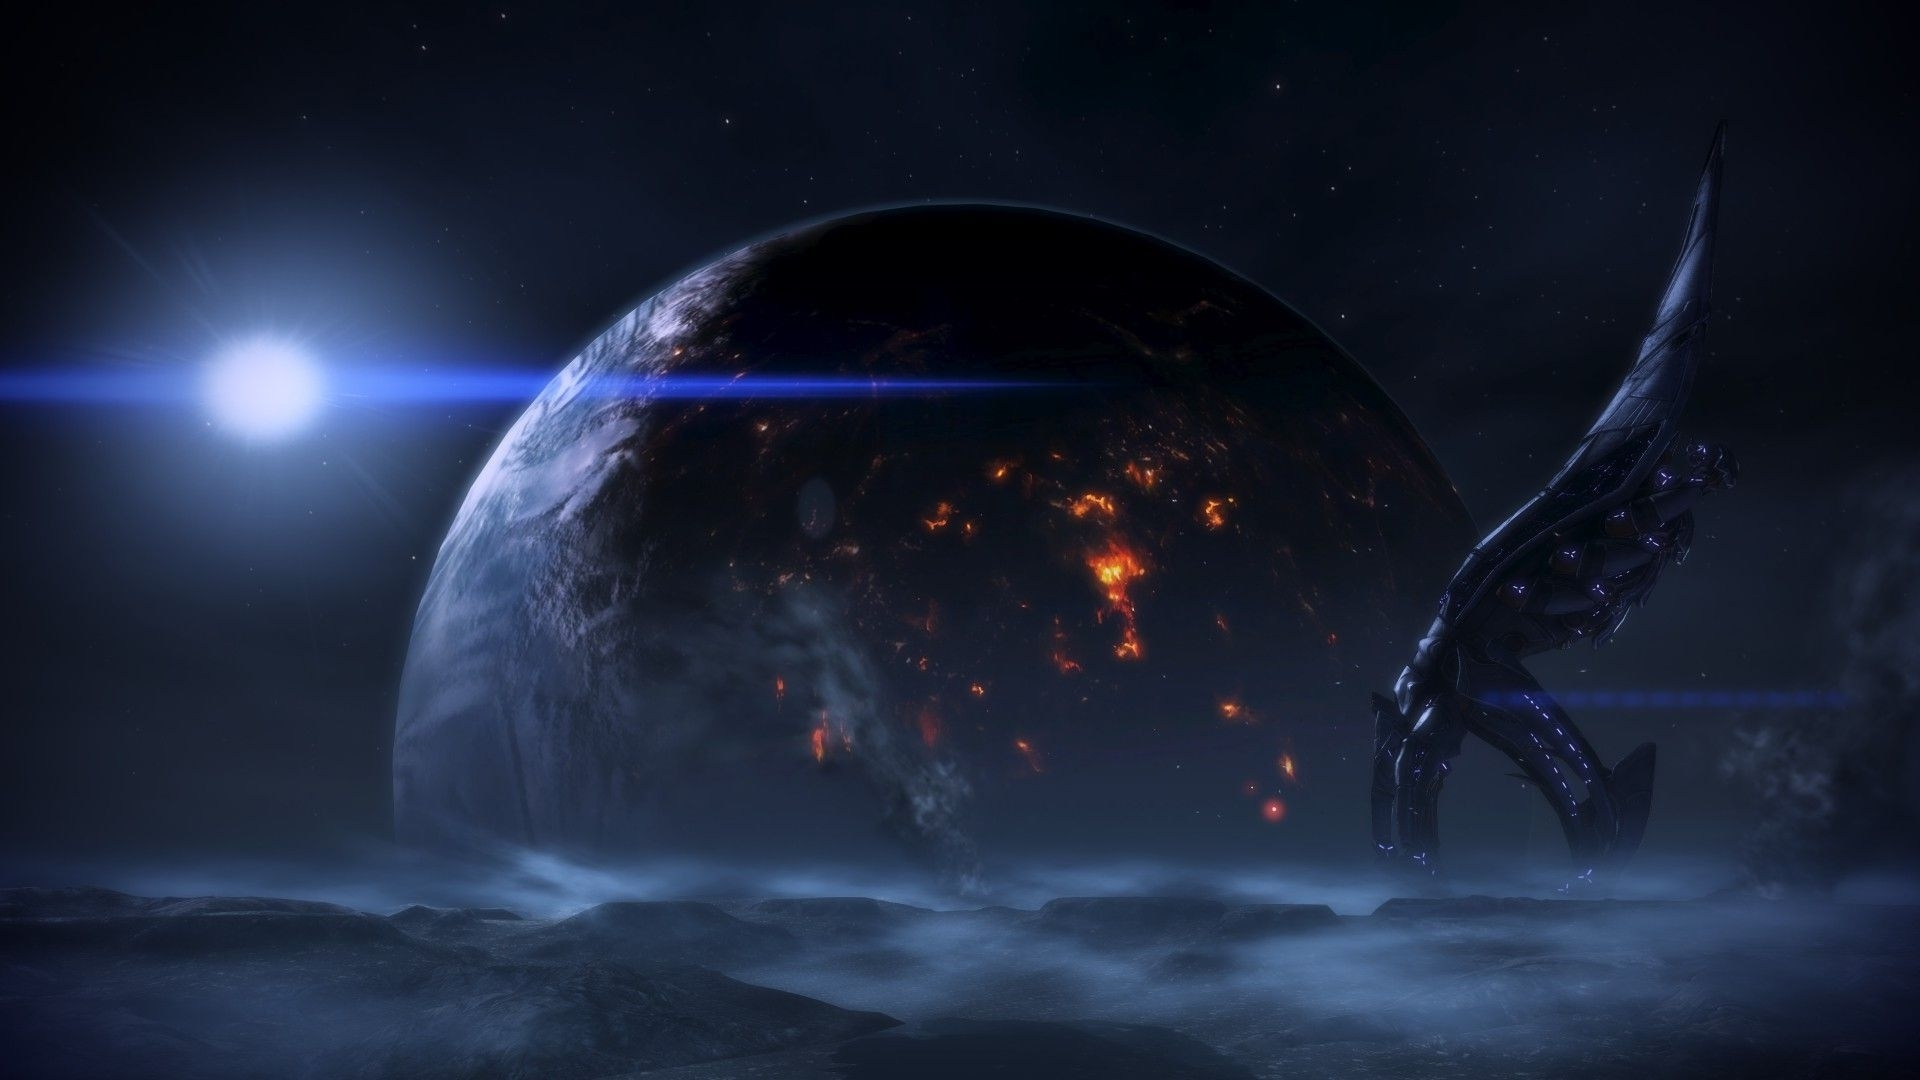 mass effect hd desktop wallpaper 17436 - baltana